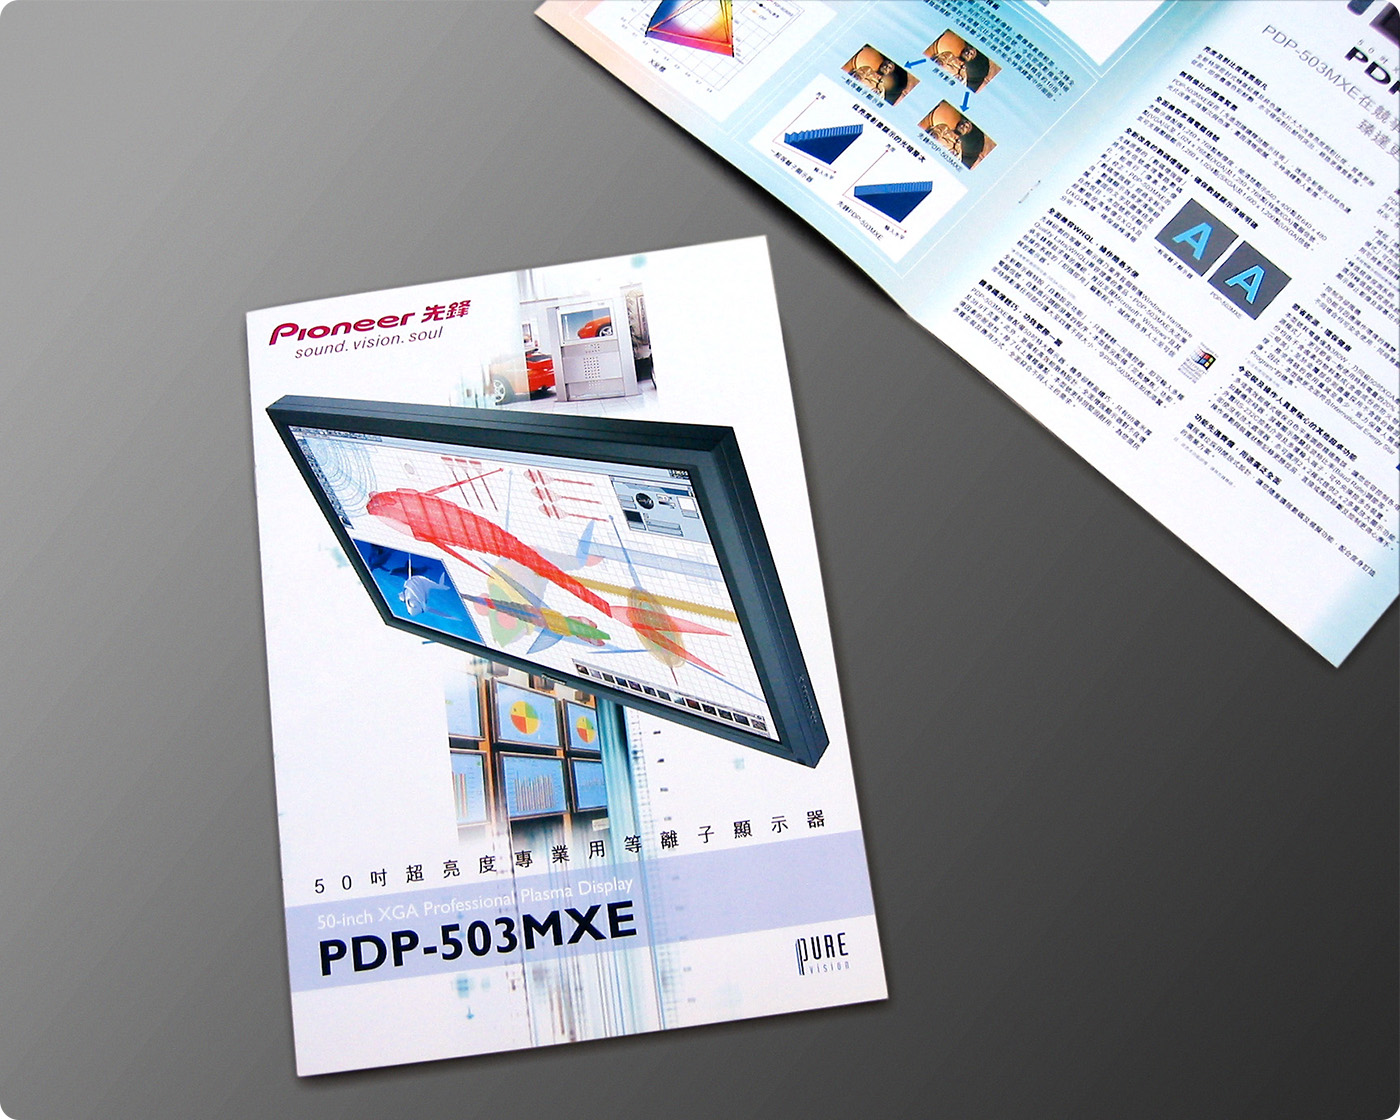 Pioneer PDP-503MXE VGA Plasma Display Catalogue